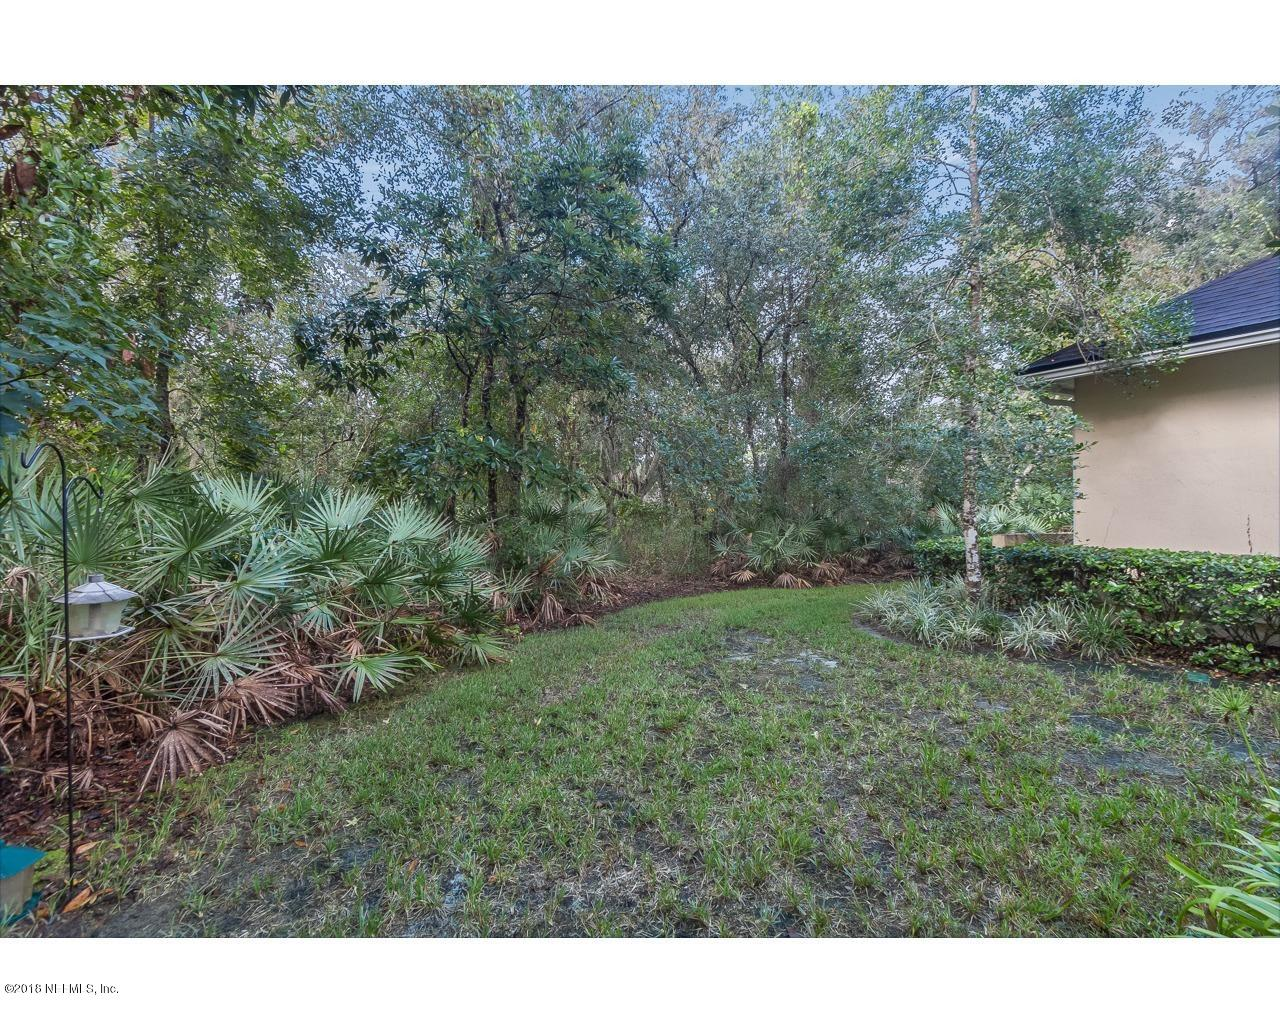 3732 BERENSTAIN, ST AUGUSTINE, FLORIDA 32092, 4 Bedrooms Bedrooms, ,3 BathroomsBathrooms,Residential - single family,For sale,BERENSTAIN,964121